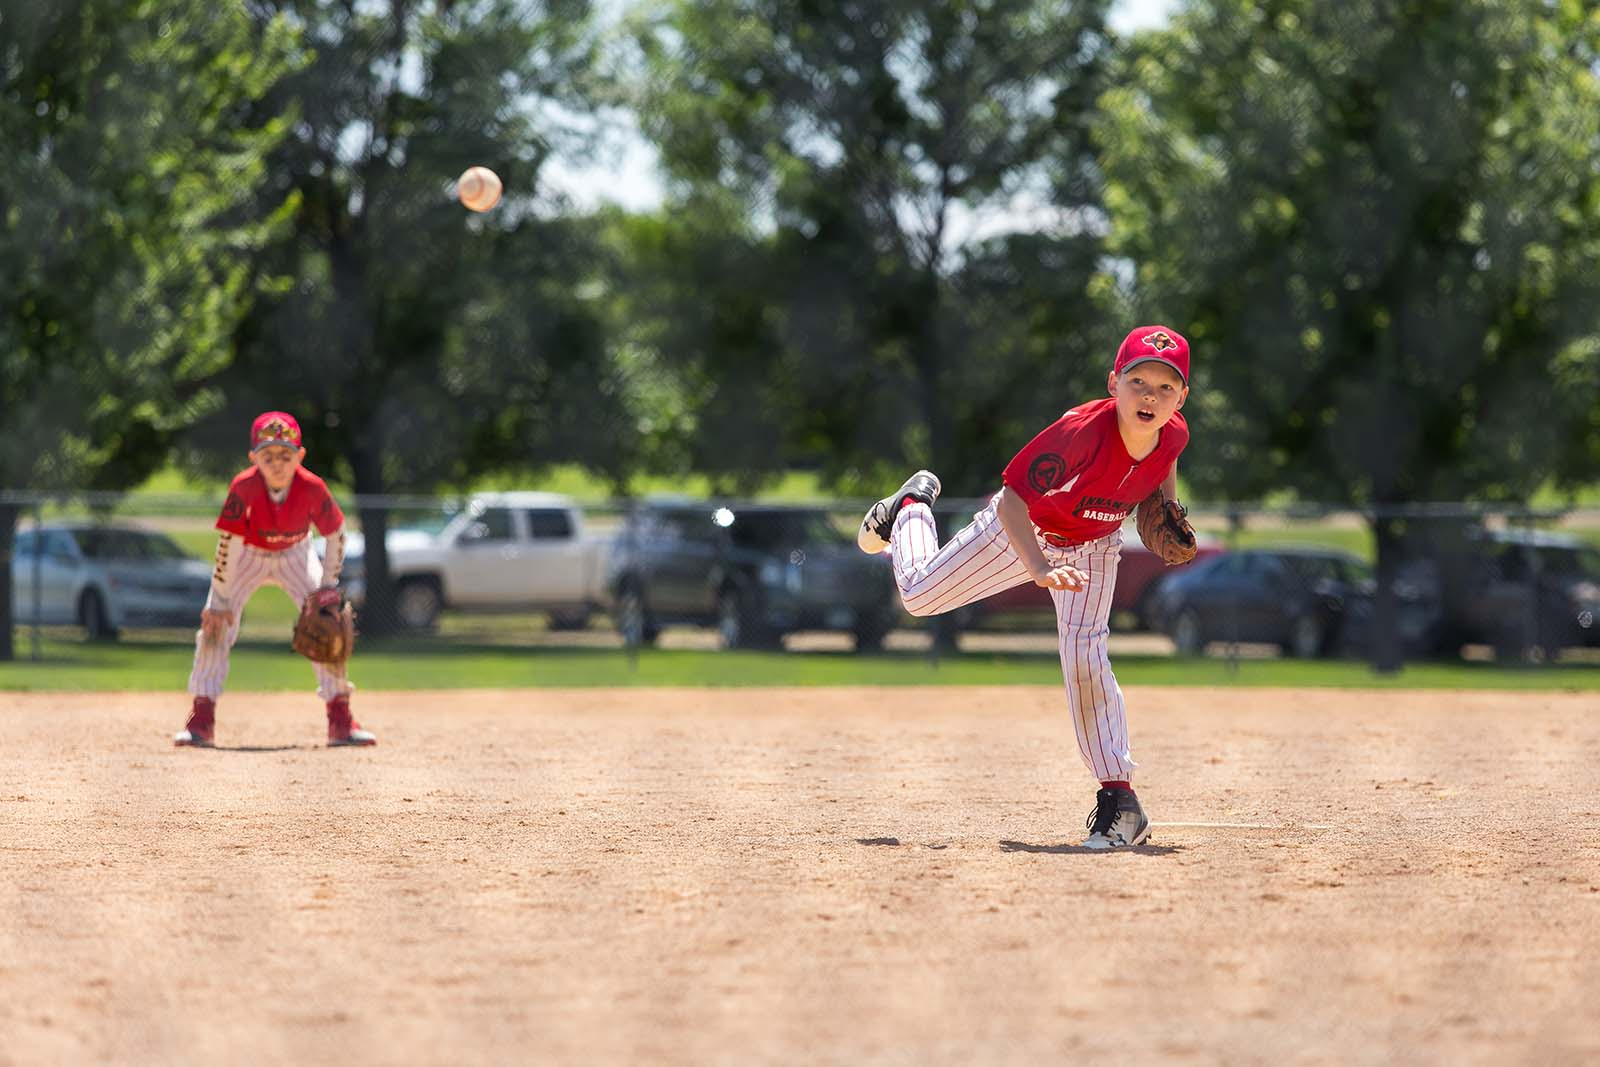 Amy Miller Photography game on! 10 ways to up your sports photography game - click